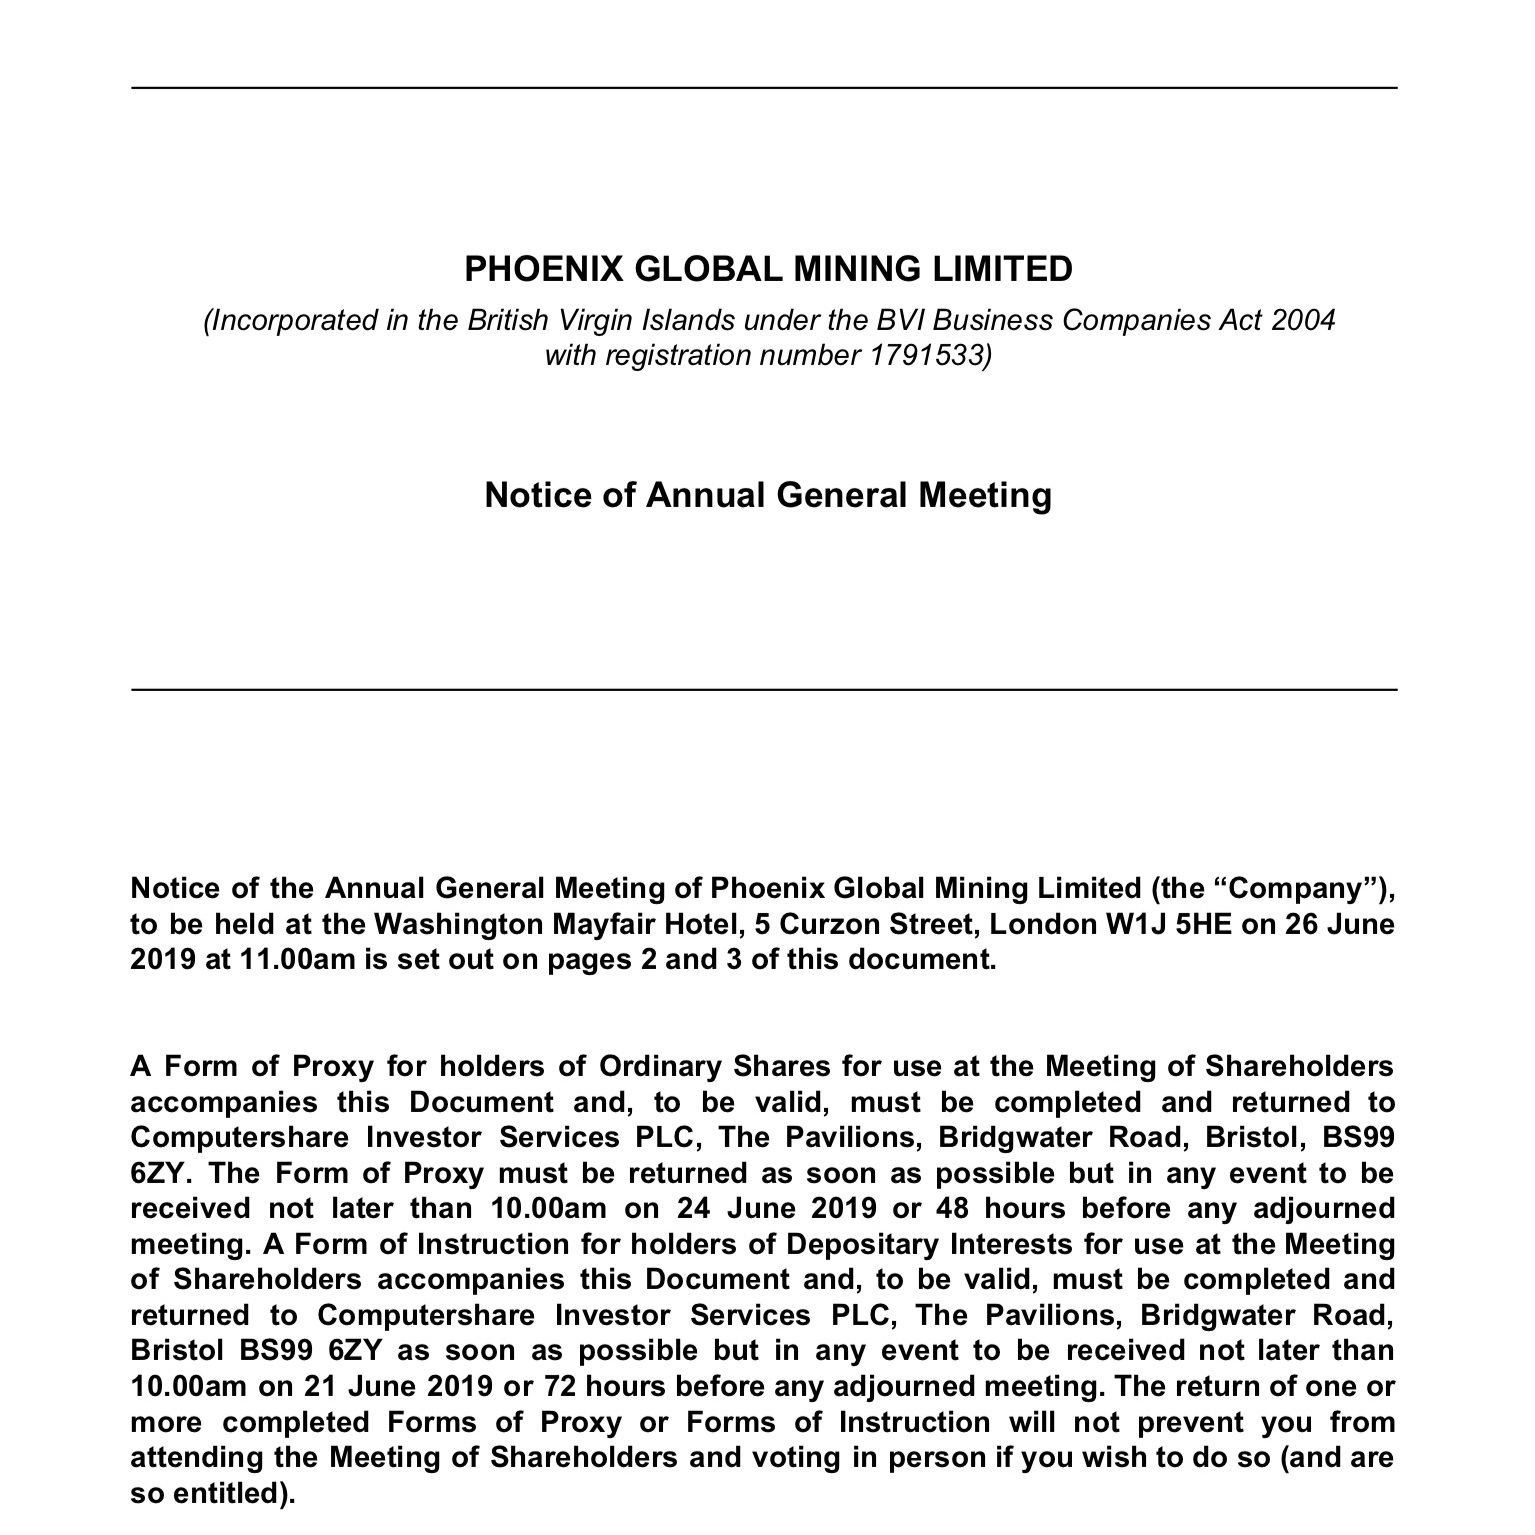 Notice of Annual General Meeting - 05 June 2019Notice of the Annual General Meeting of Phoenix Global Mining Limited to be held on 26 June 2019.